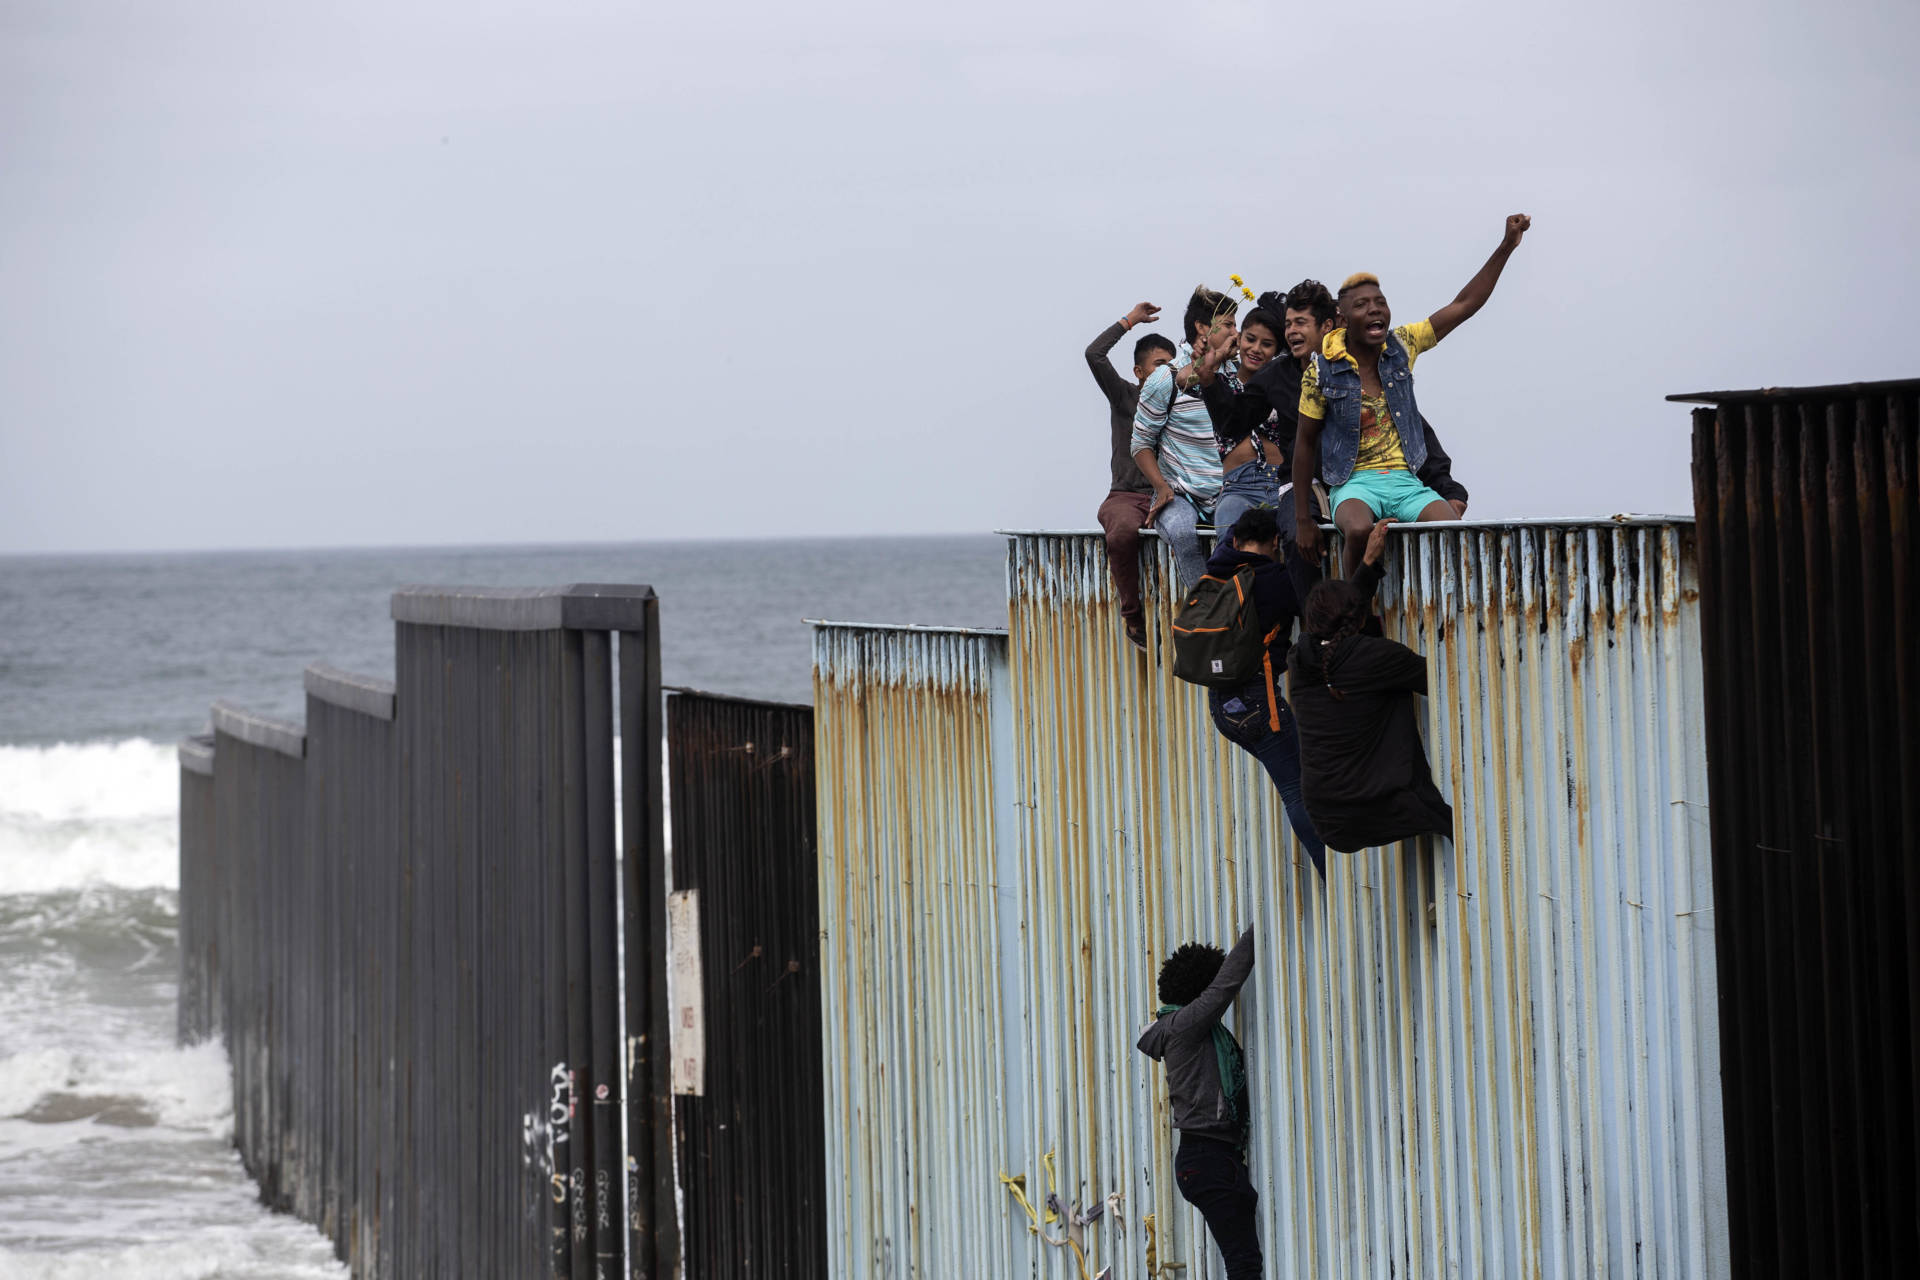 """Some Central American migrants traveling in the """"Migrant Via Crucis"""" caravan climbed the wall to sit and wave signs under the watchful eyes of U.S. Border Patrol agents at the US/Mexico Border at Tijuana's beaches, Baja California state, Mexico, on April 29, 2018."""